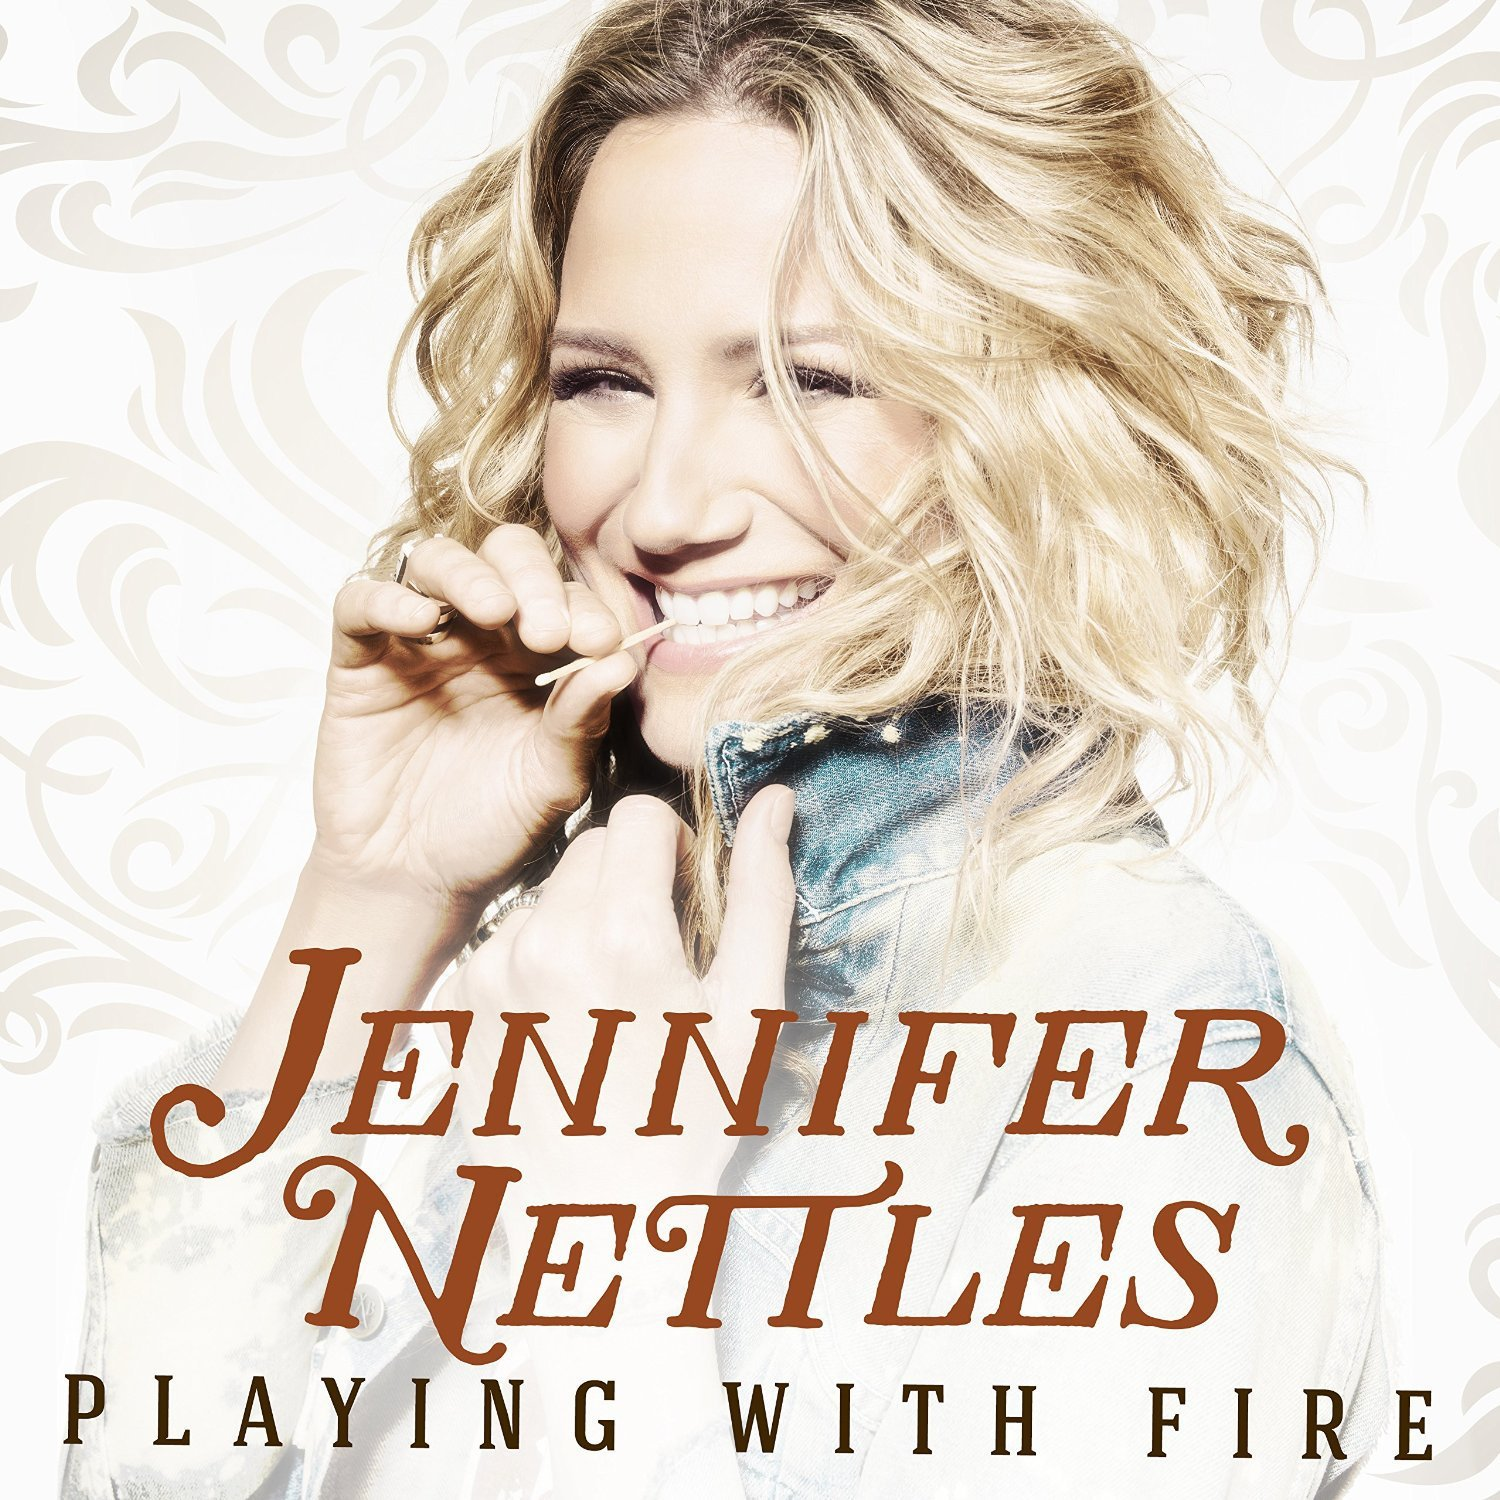 Jennifer Nettles - Playing With Fire - Amazon.com Music